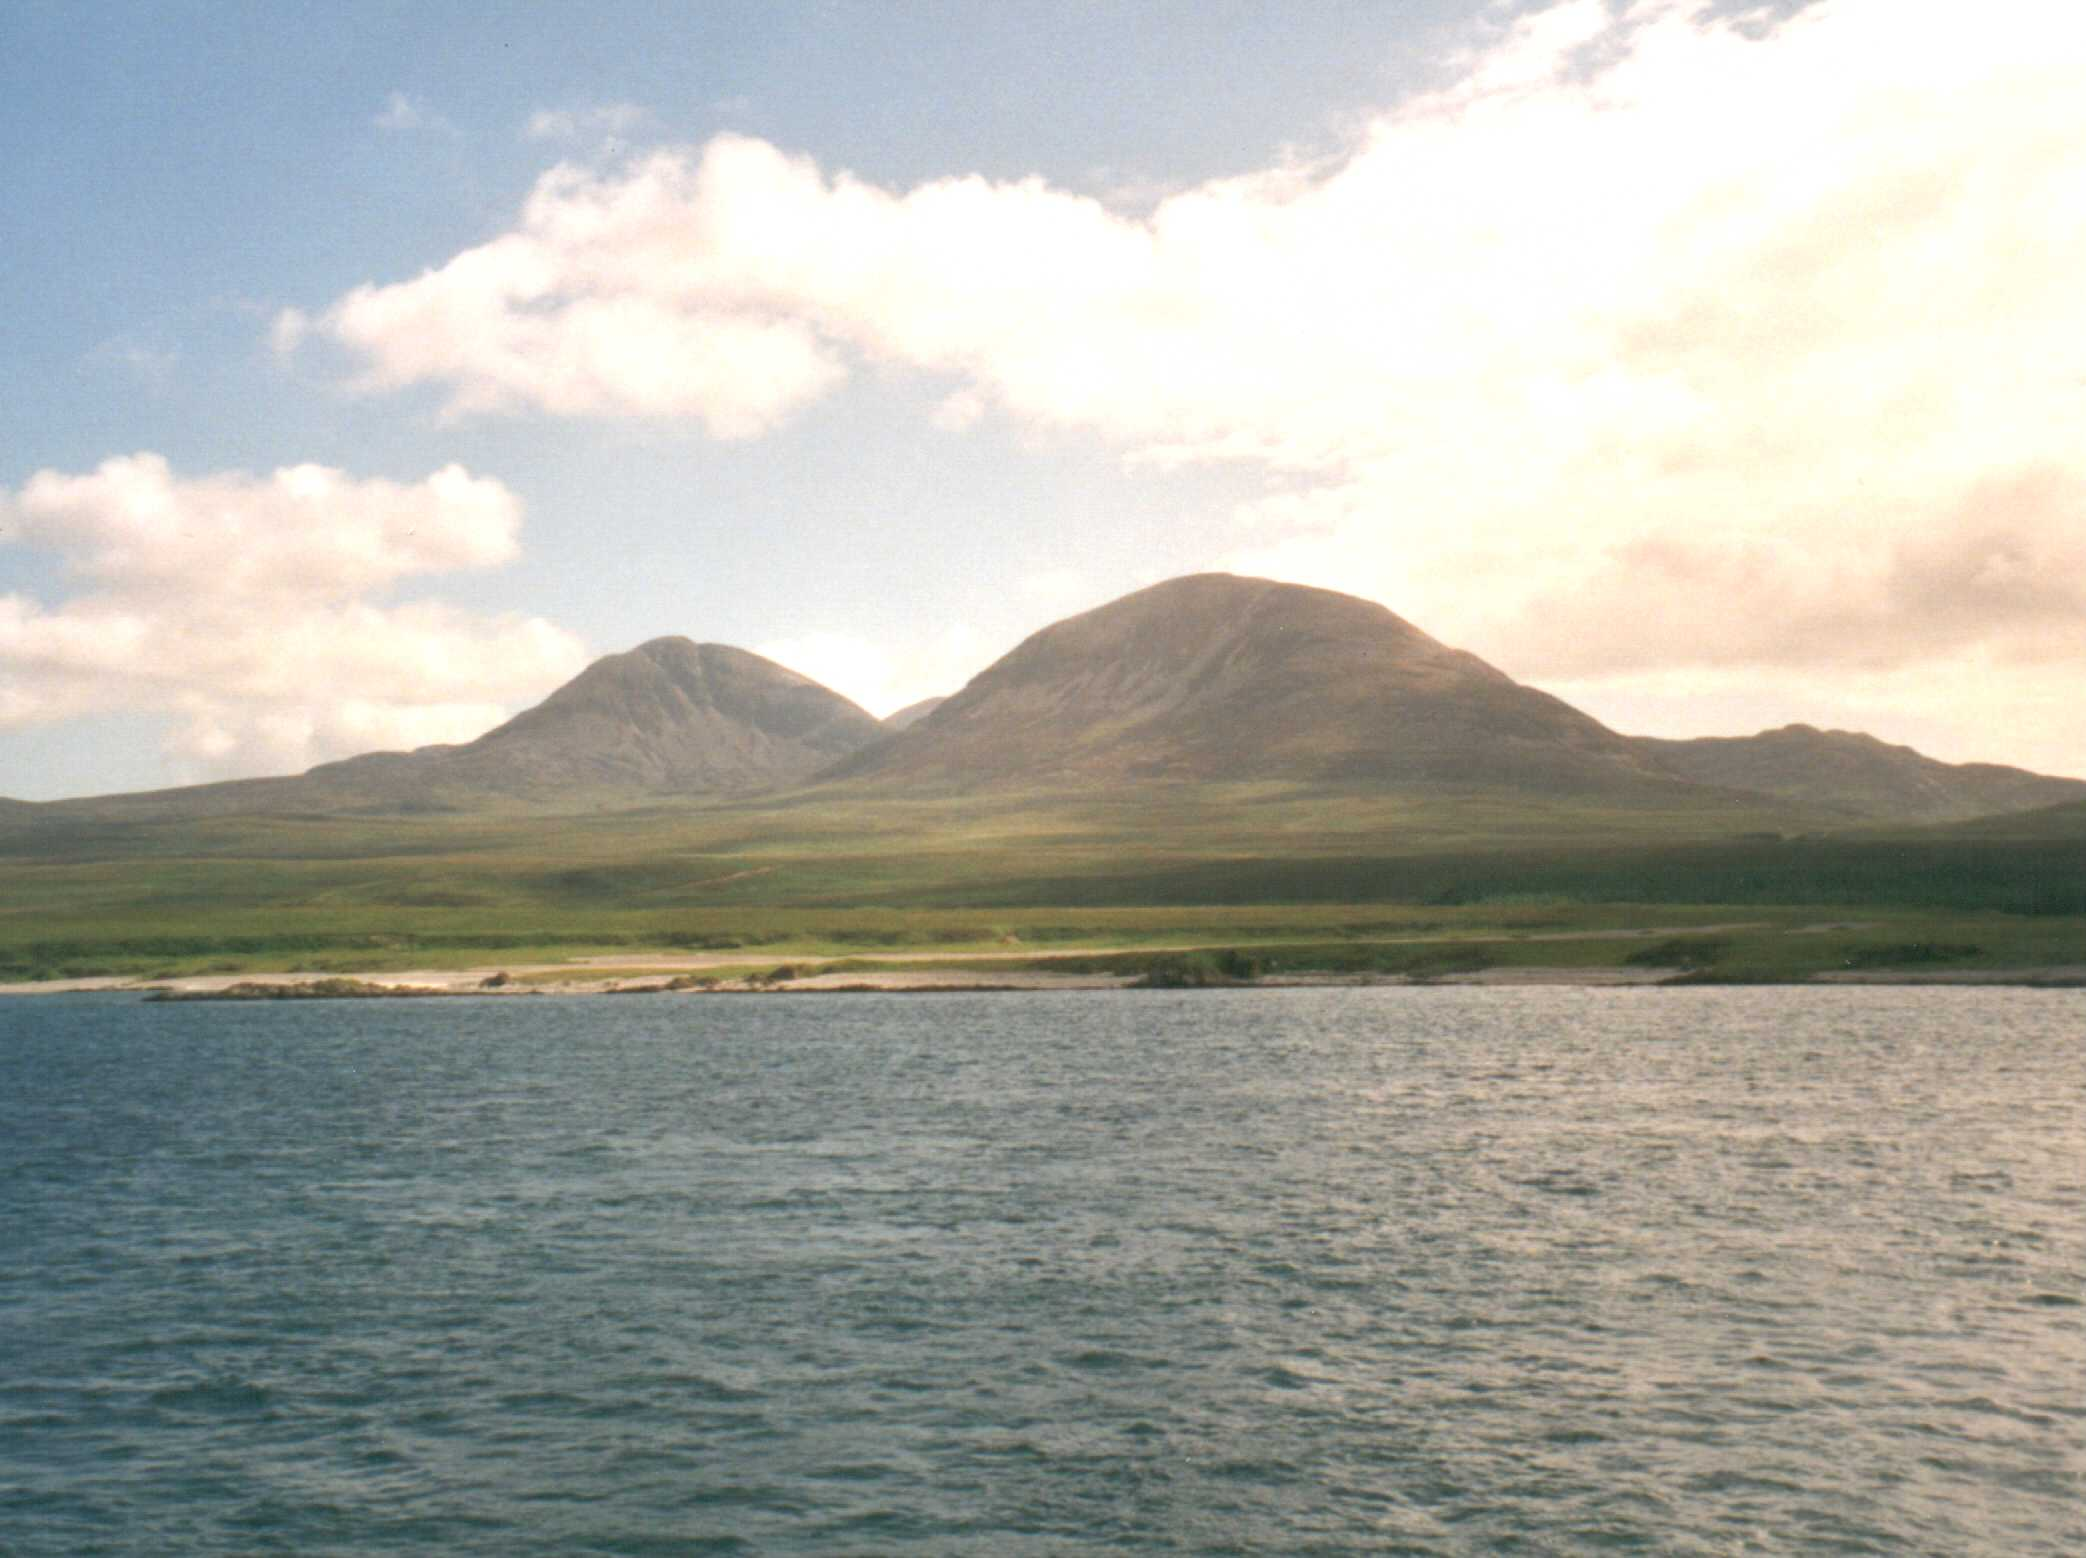 The Paps of Jura from the ferry